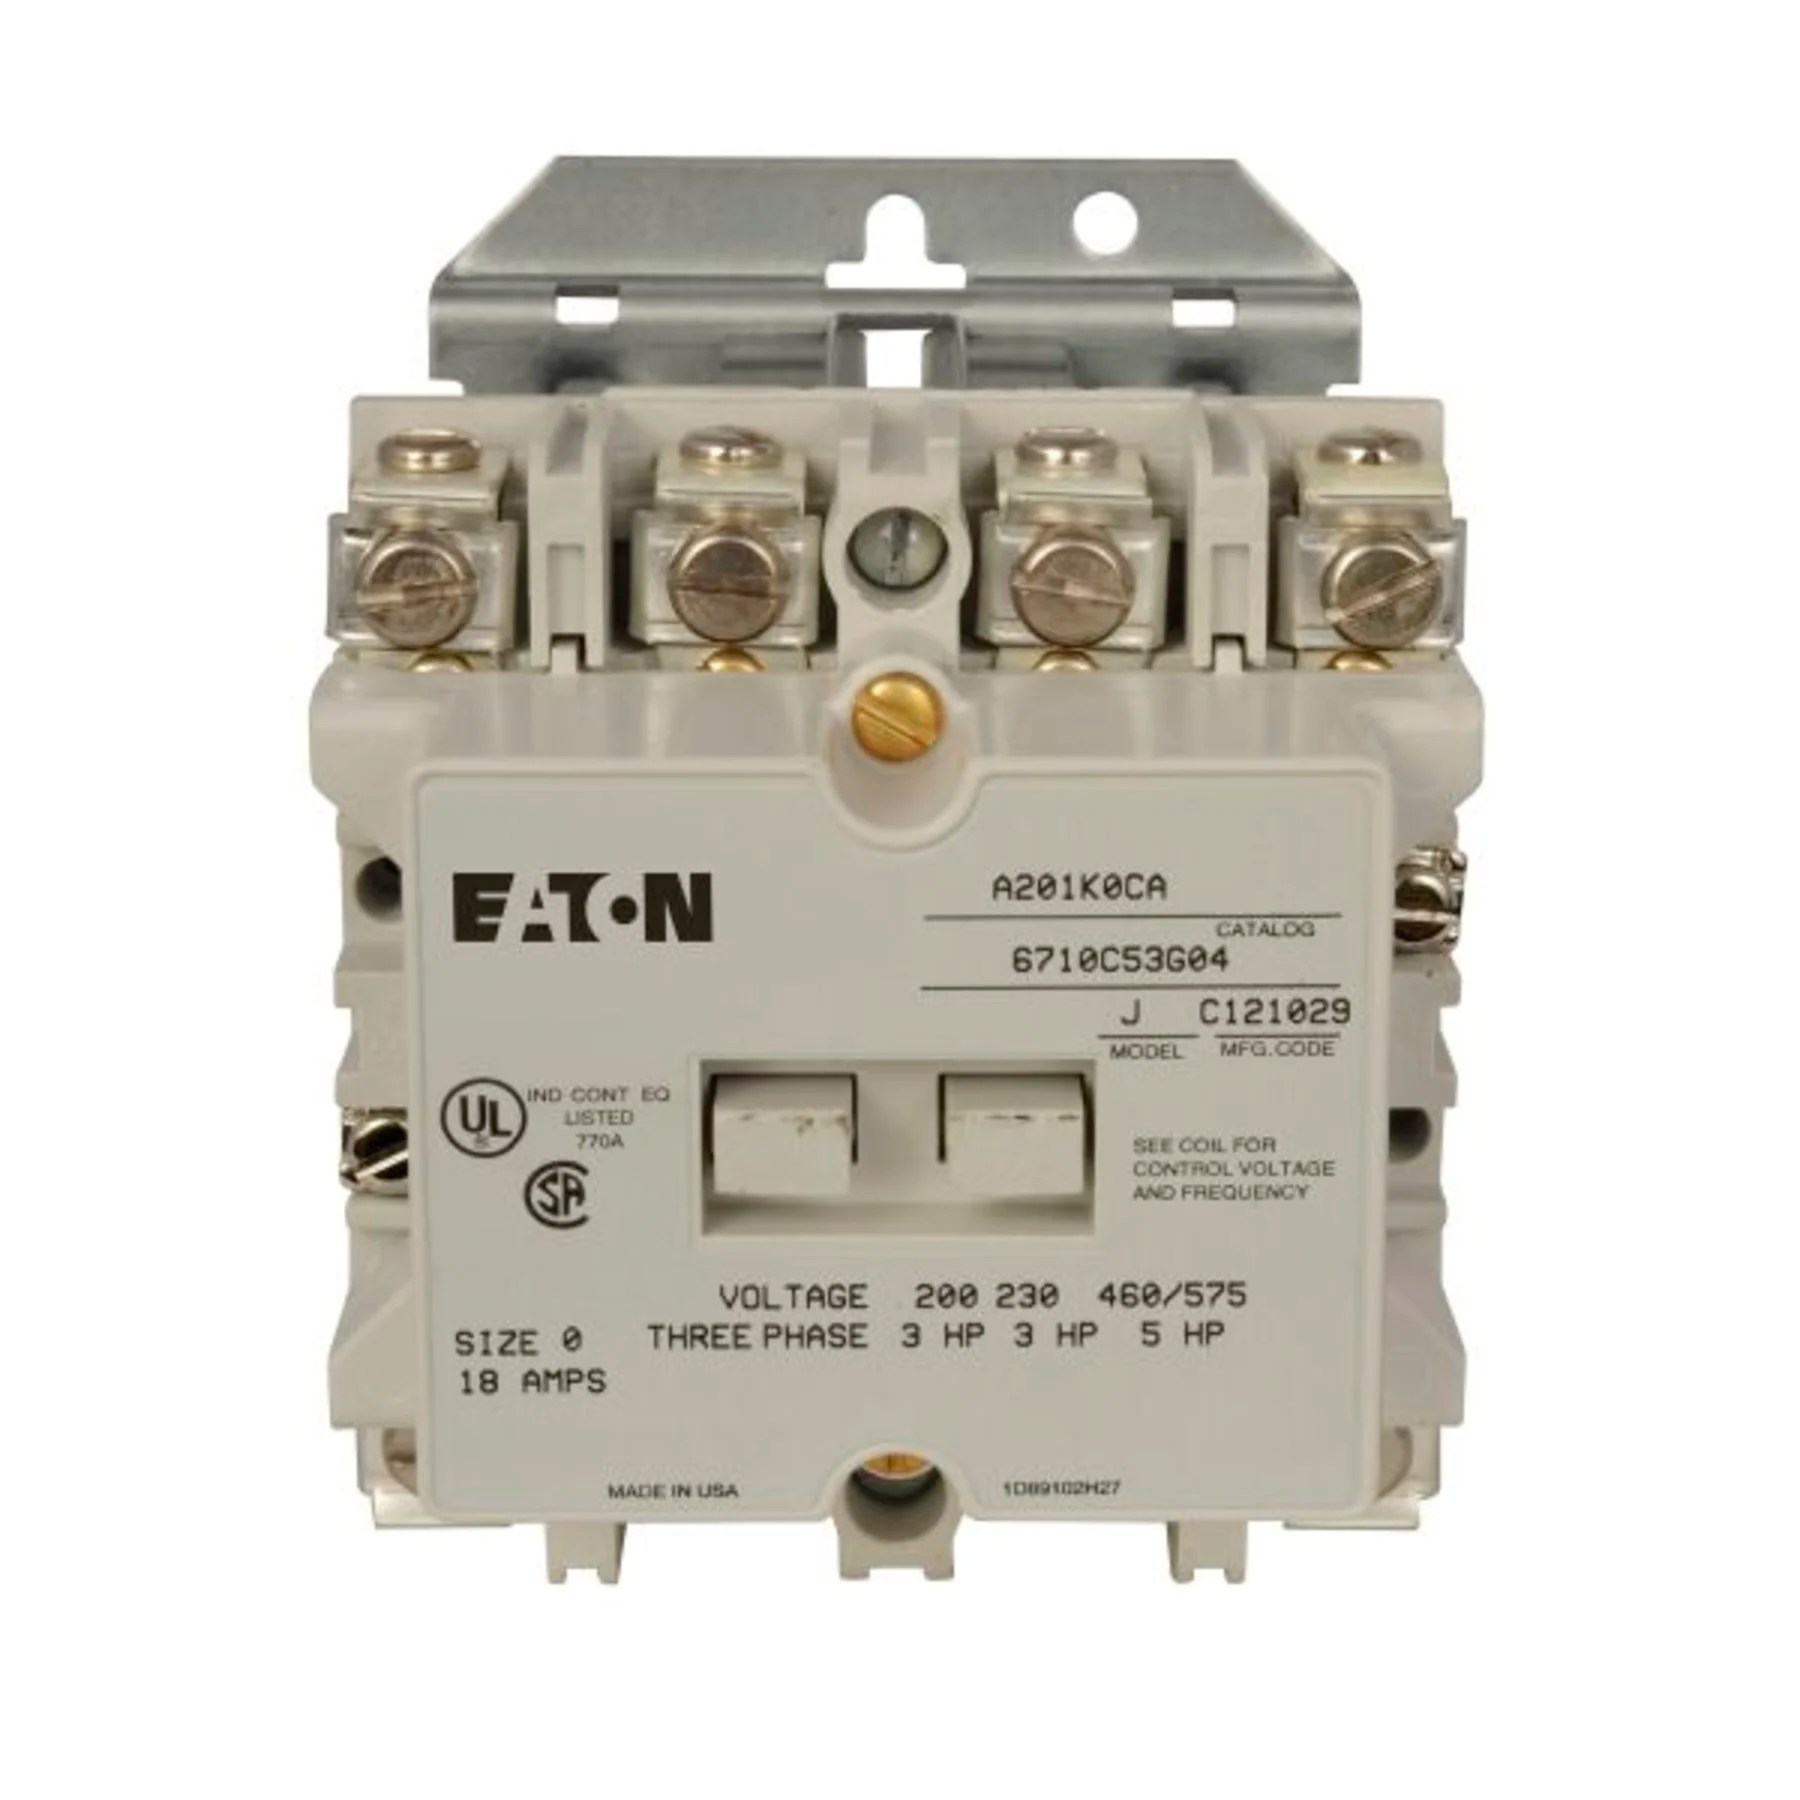 hight resolution of cutler hammer a201k0ca reversing contactor product image